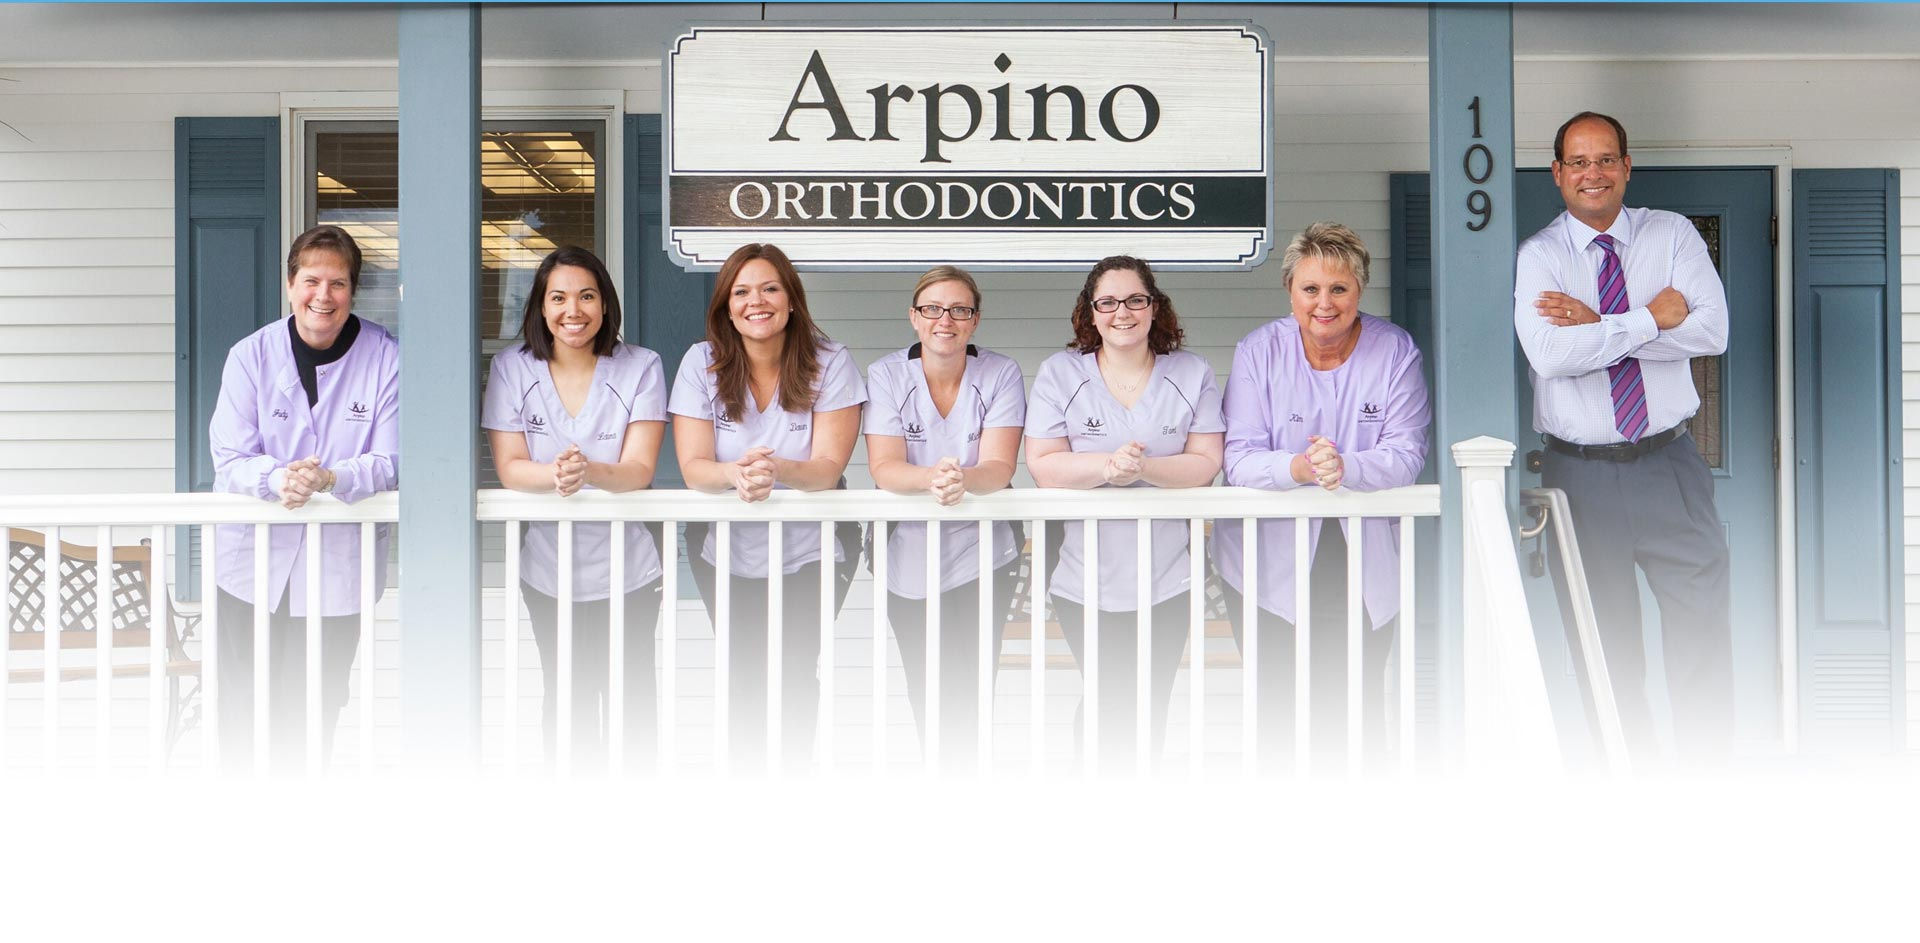 Arpino-Orthodontics-Libertyville-Illinois-Meet-Our-Team-1920_Gradient